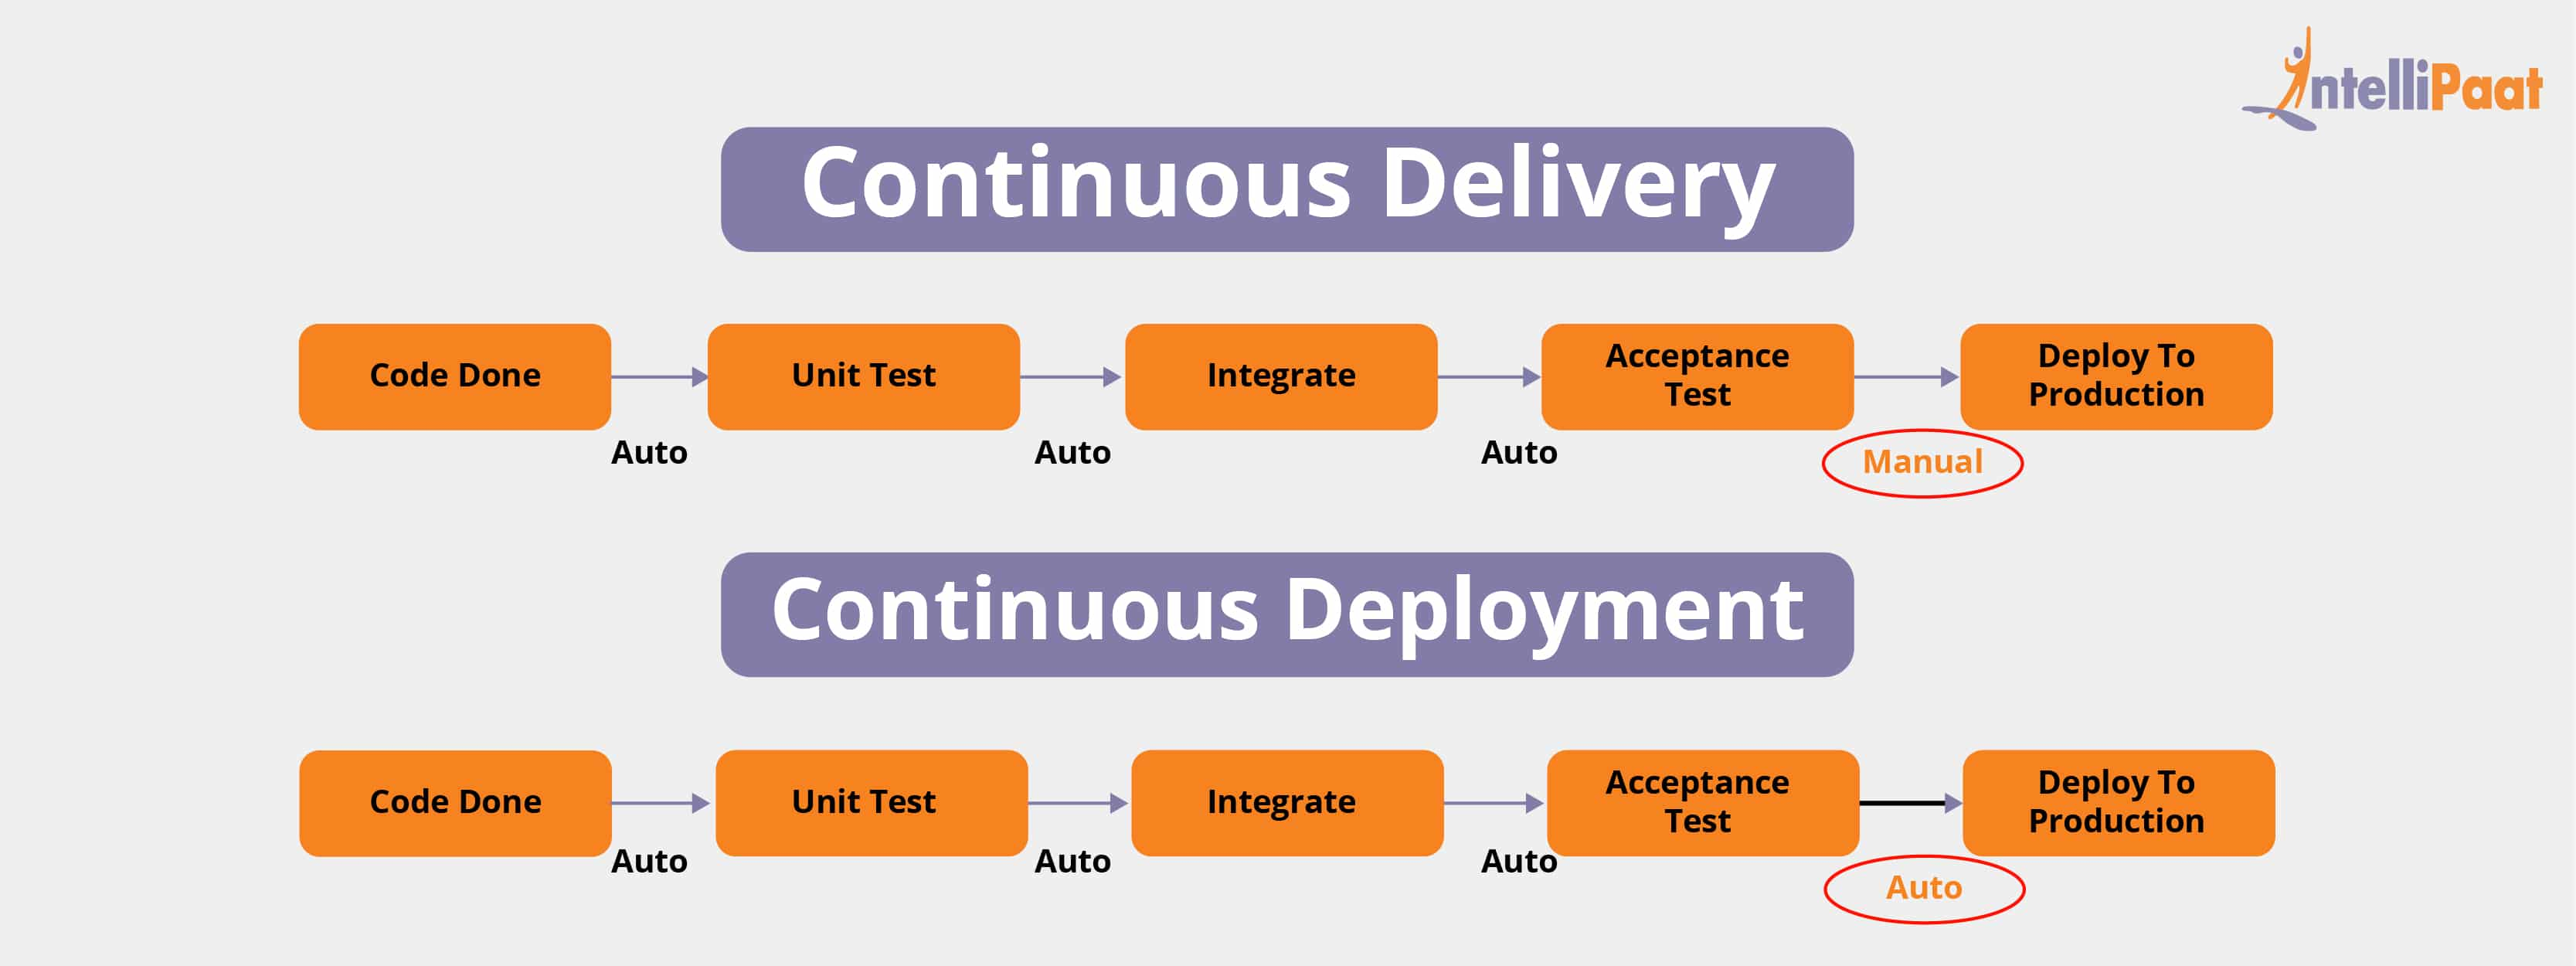 Continuous Deployment and Continuous Delivery